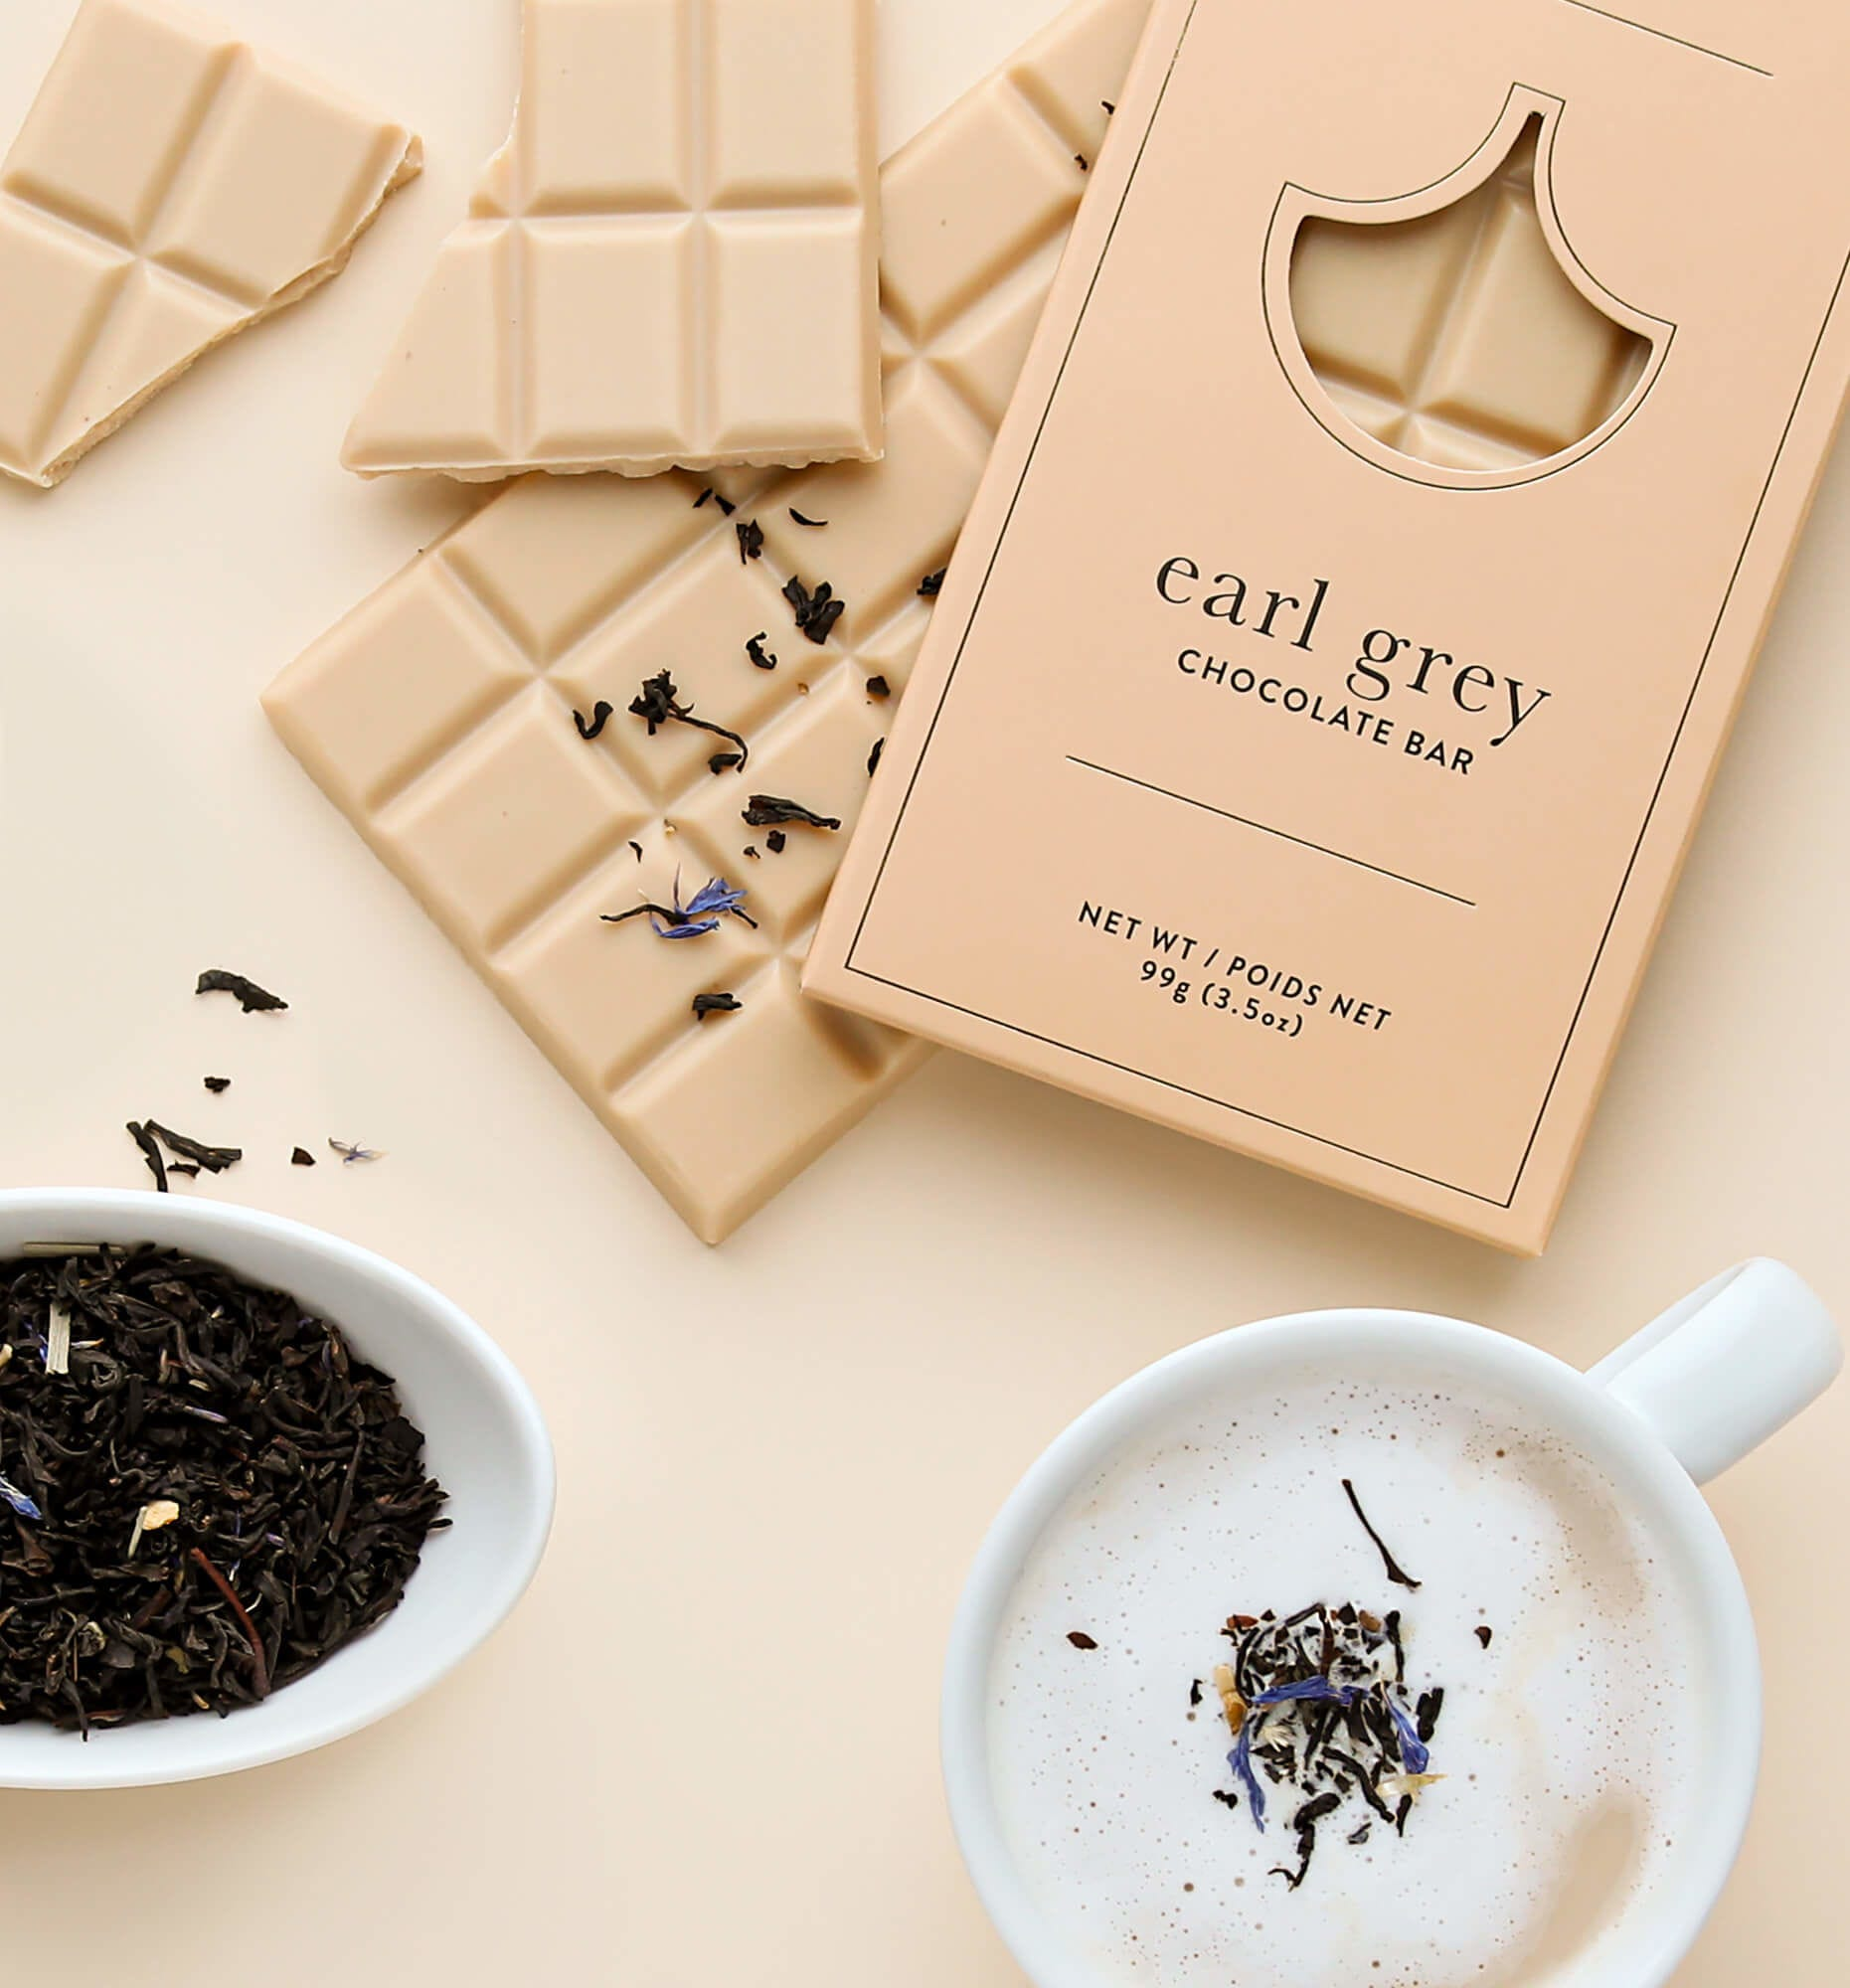 Earl Grey Chocolate Bar